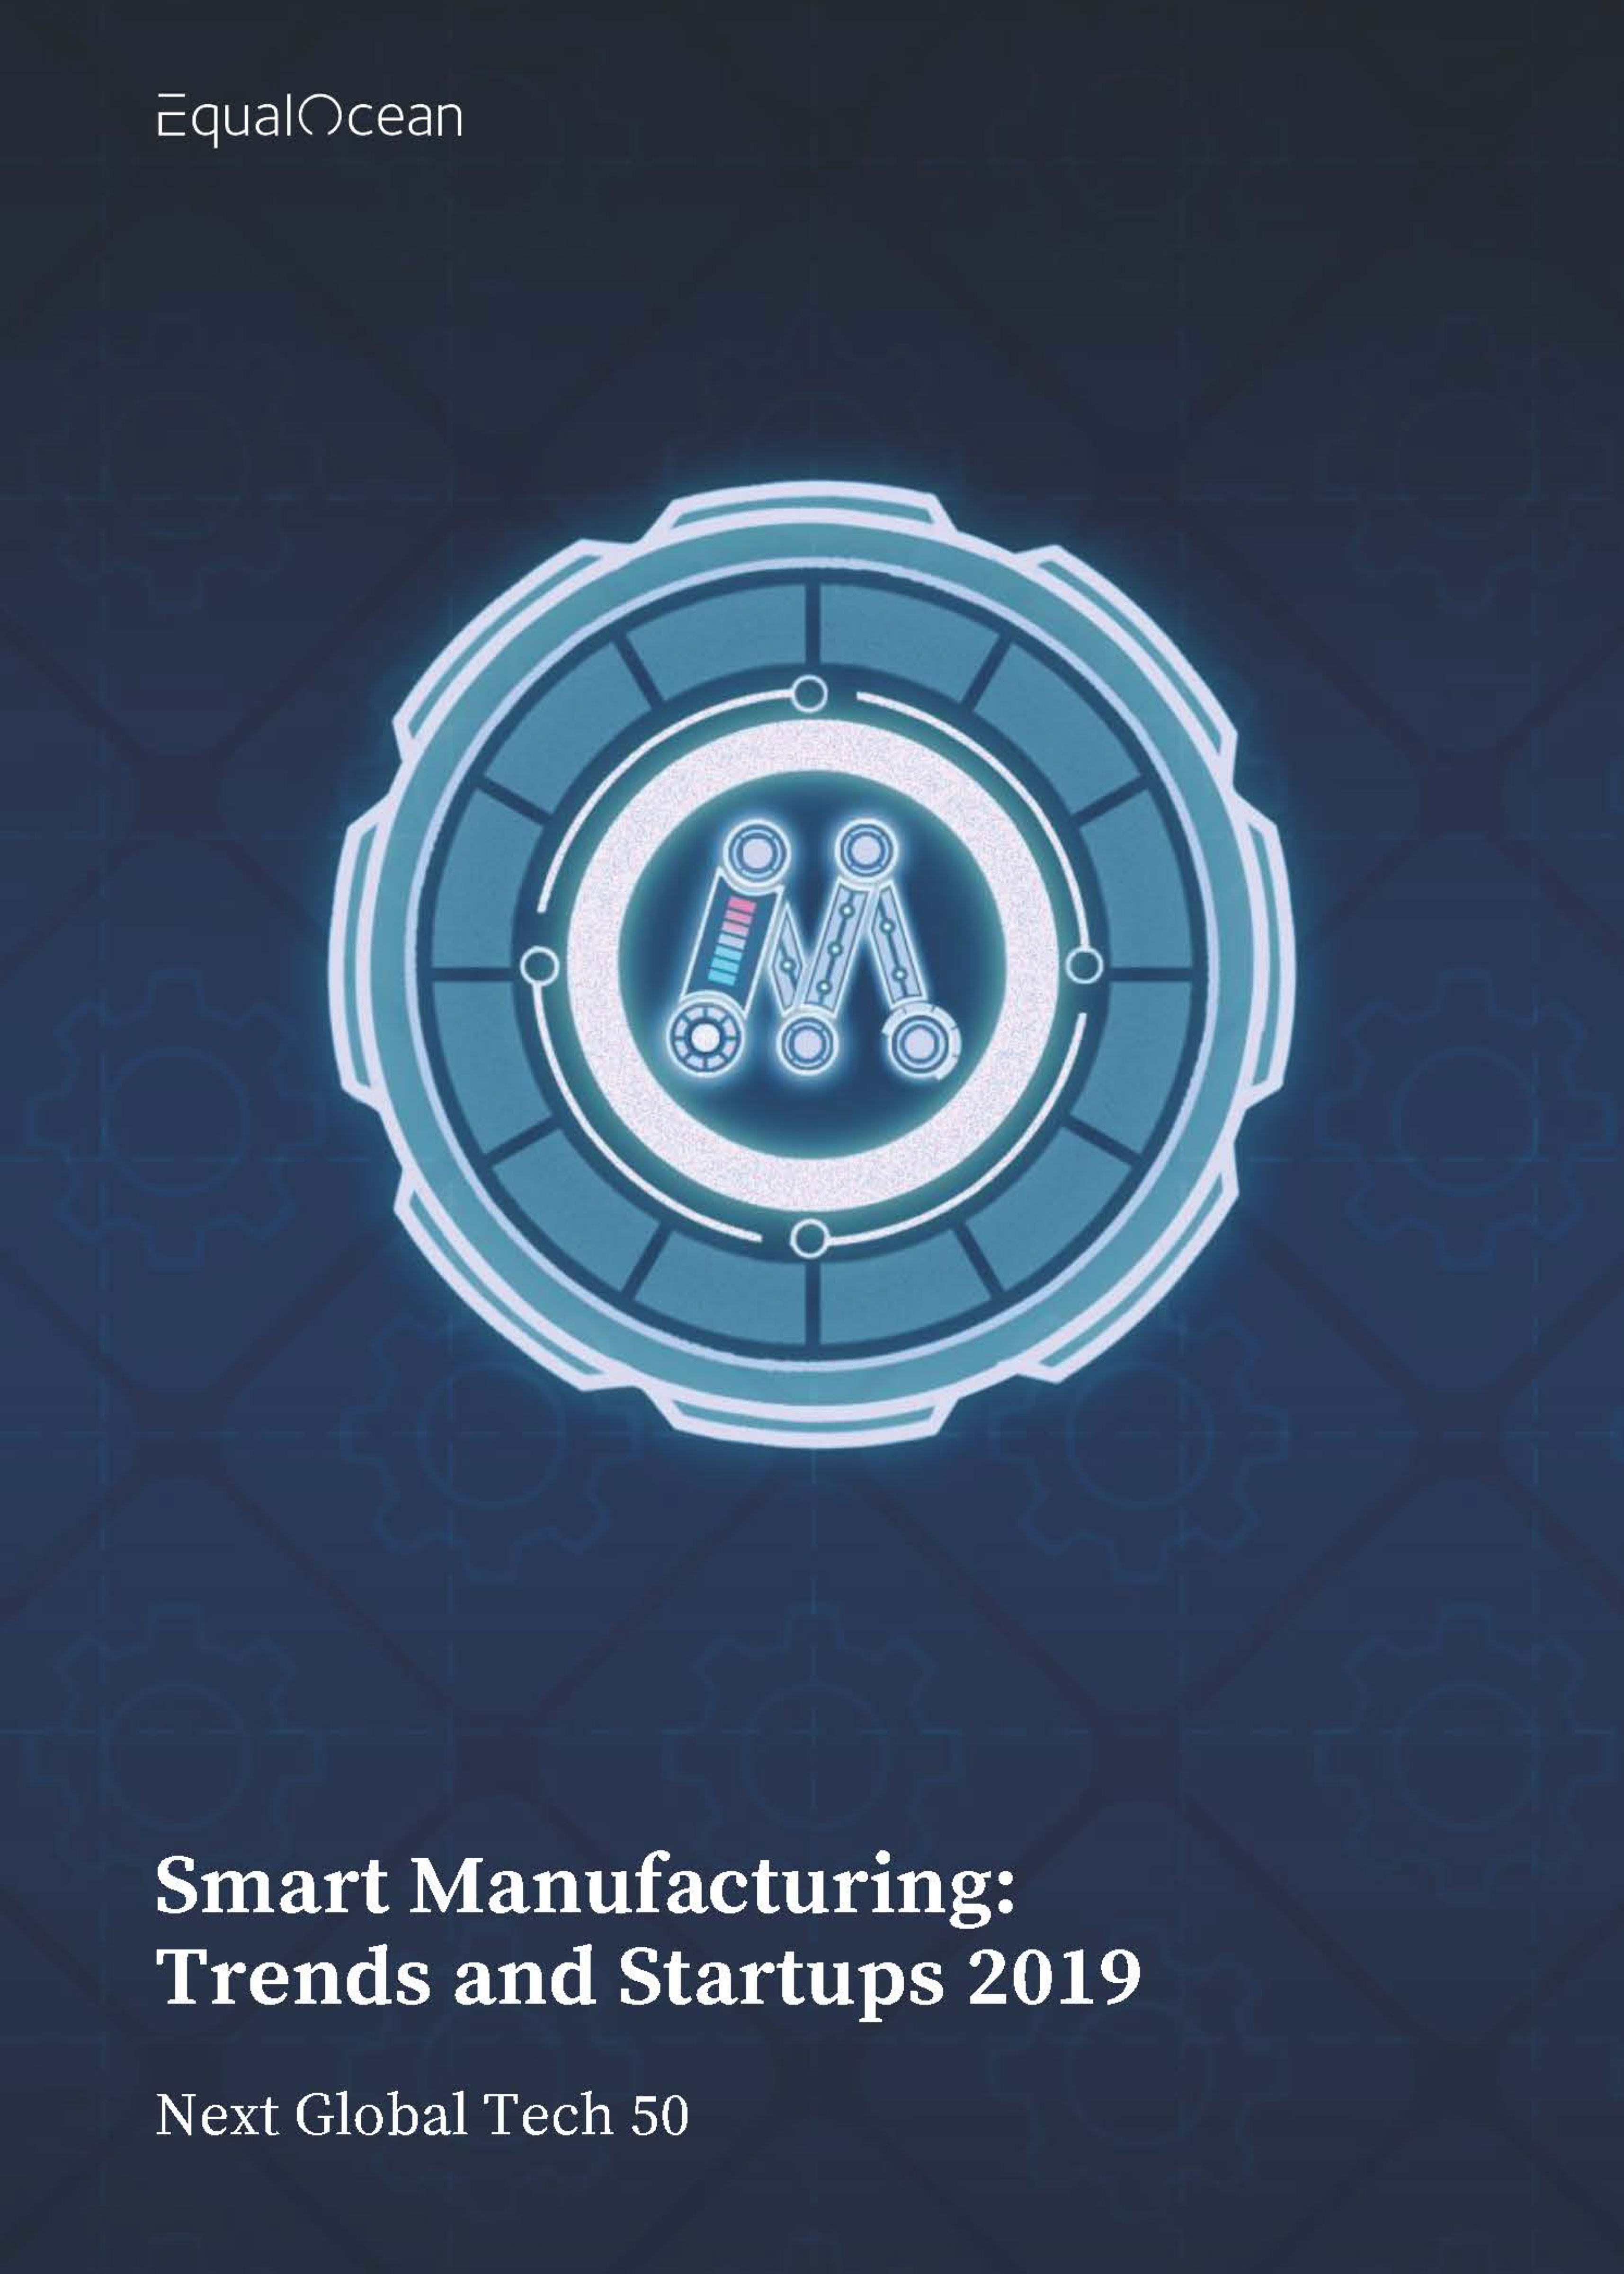 Smart Manufacturing: Trends and Startups 2019